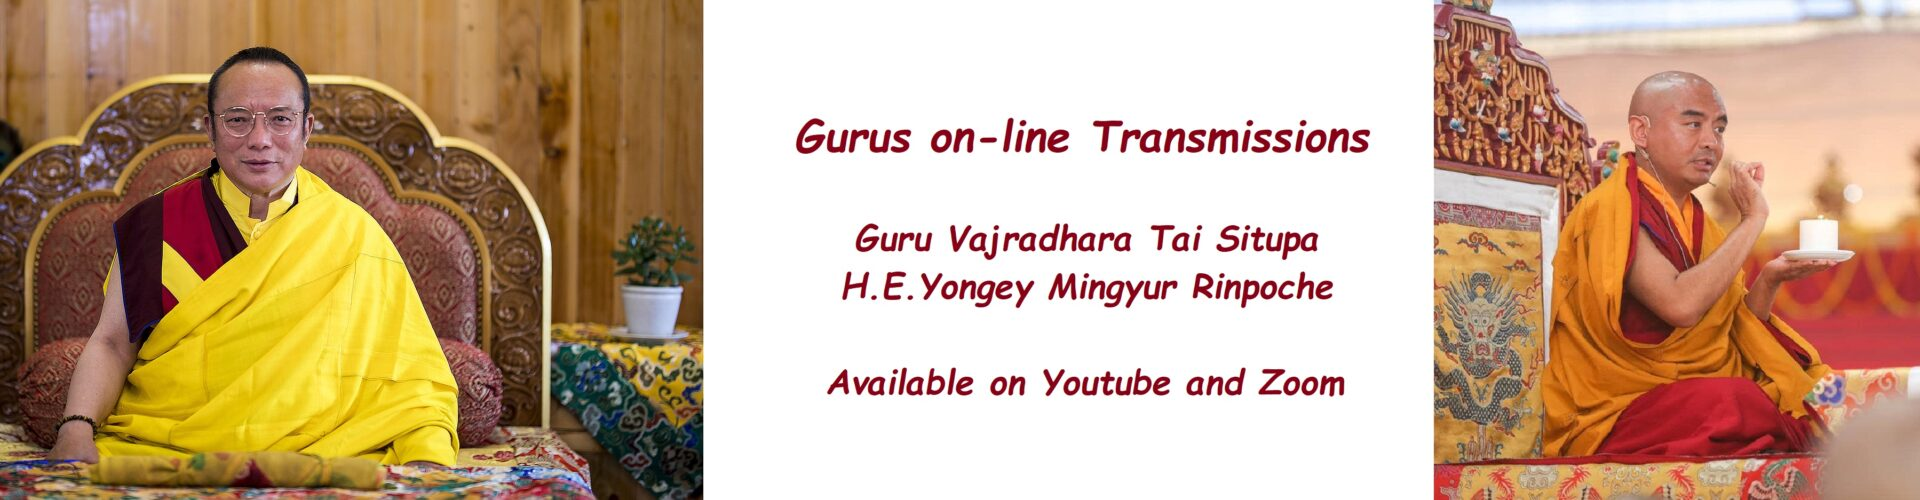 Gurus on-line Transmissions, Tai Situpa Rinpoche and Mingyur Rinpoche